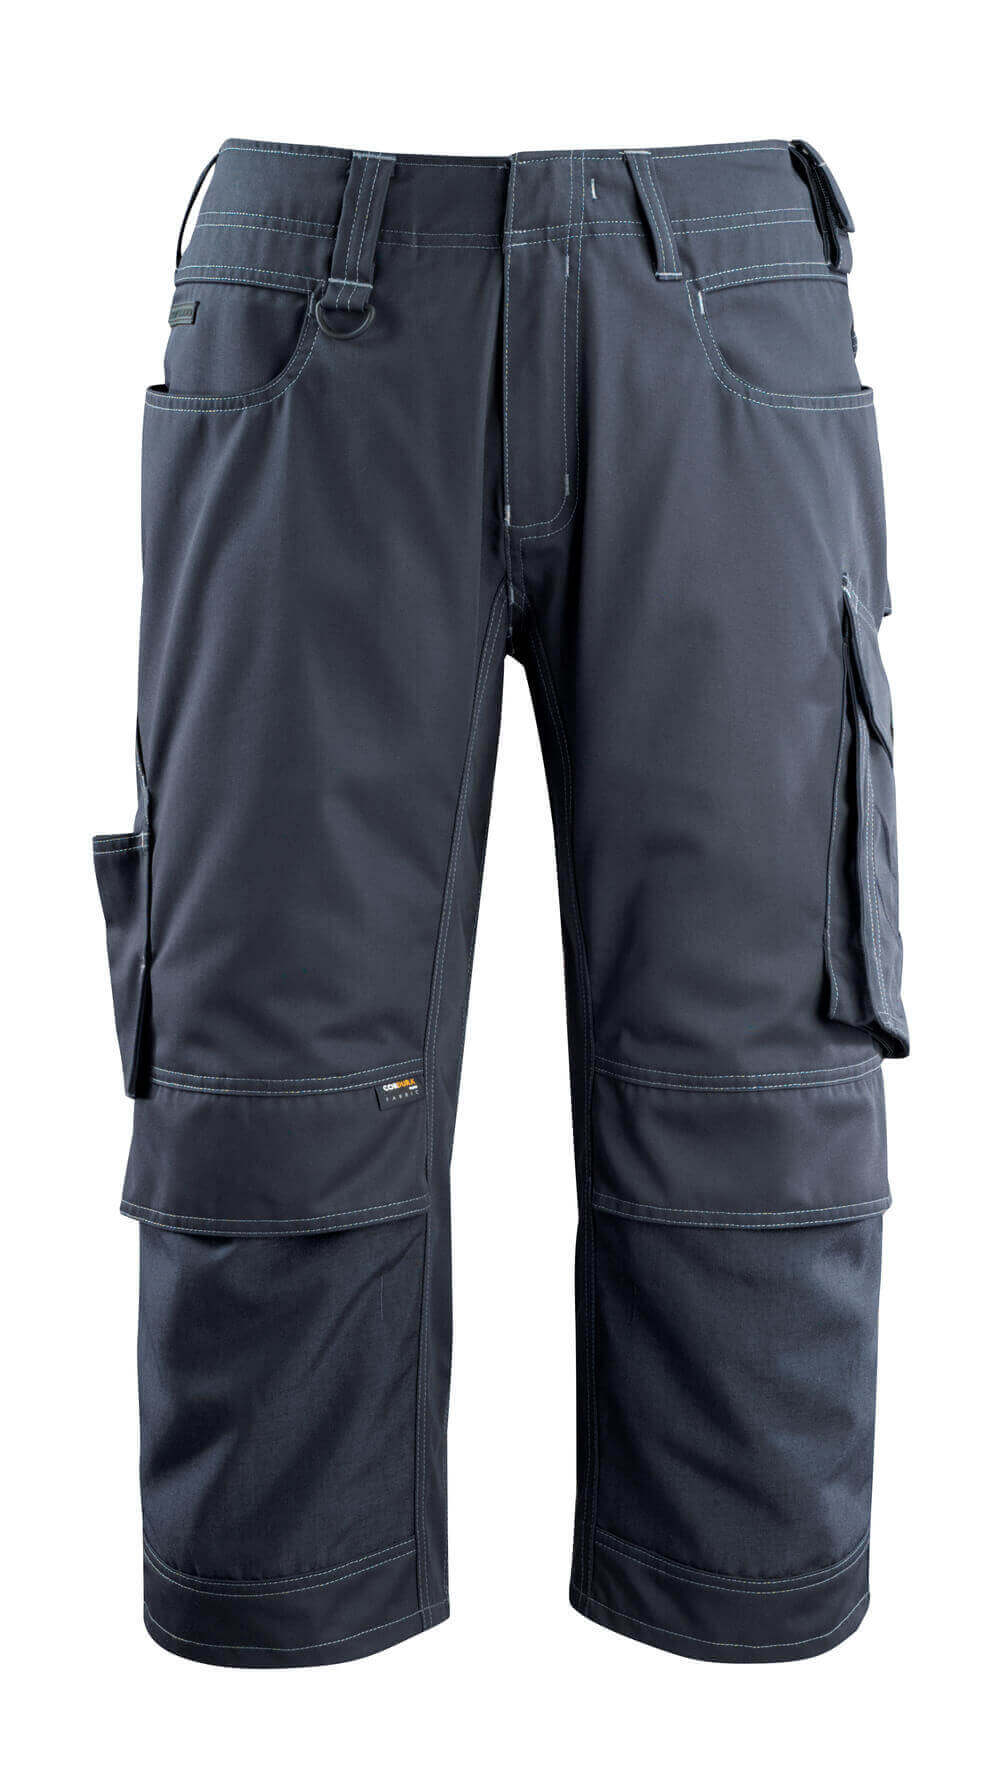 14249-442-010 ¾ Length Trousers with kneepad pockets - dark navy